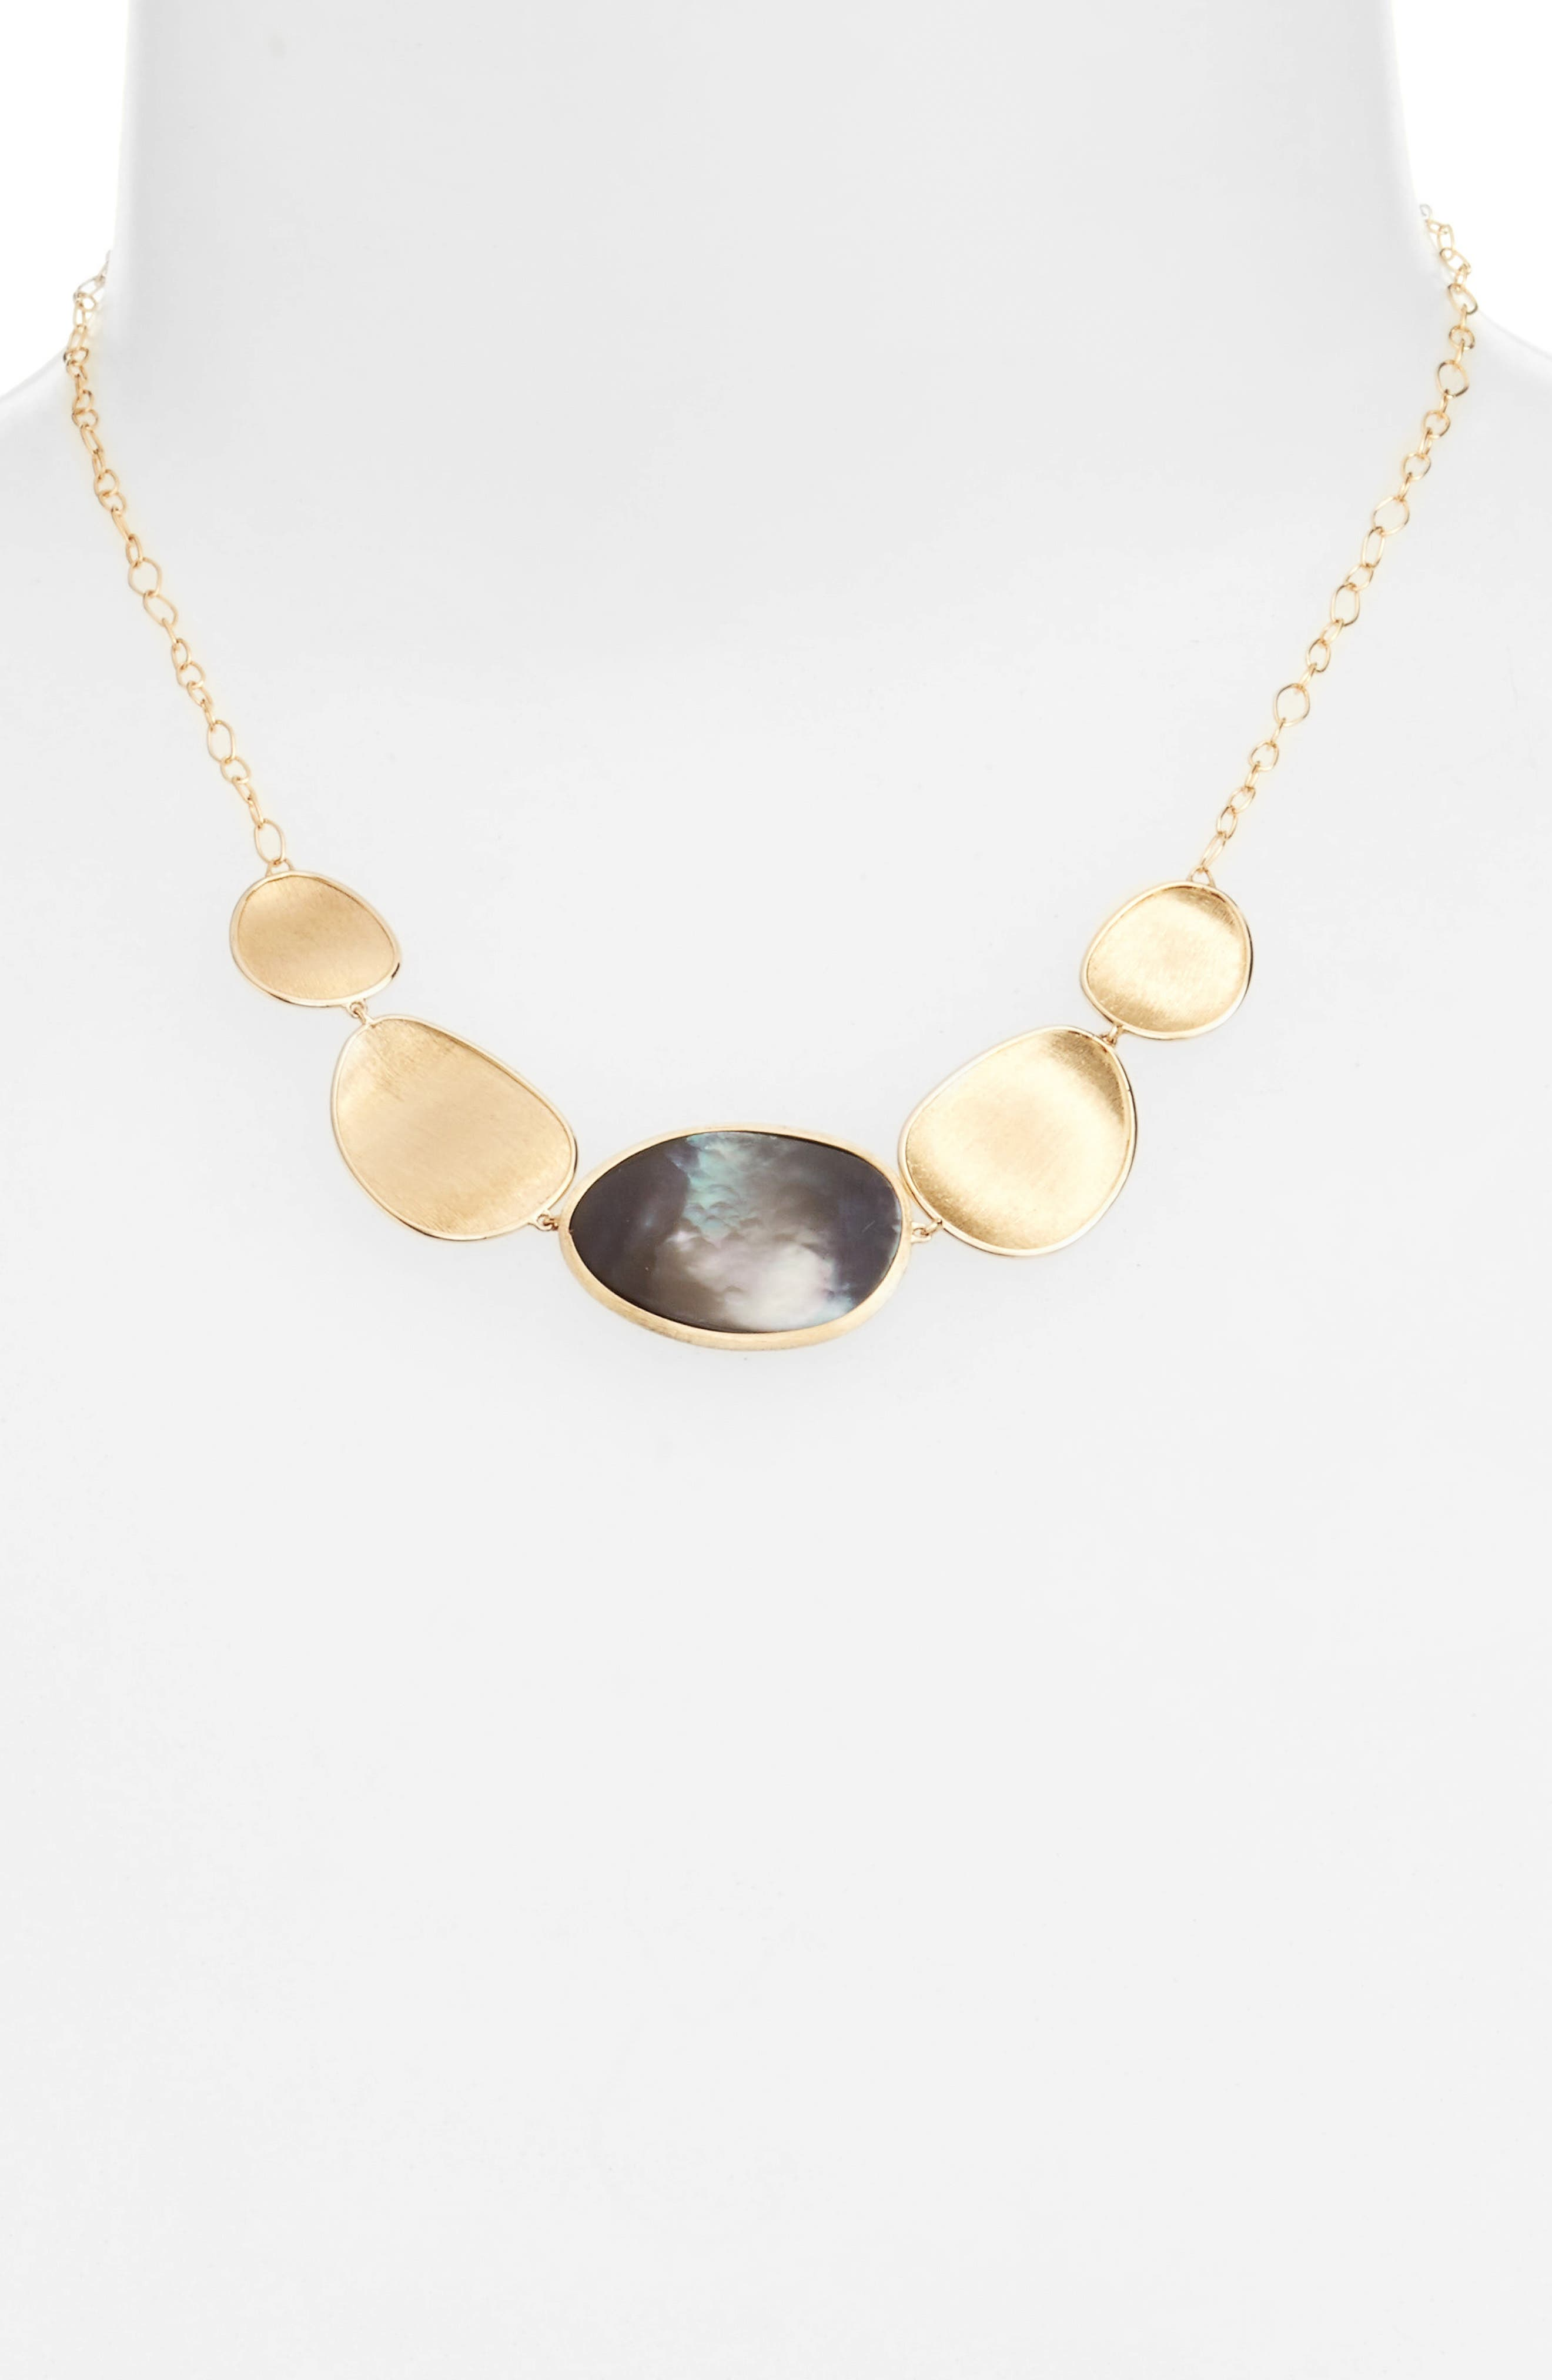 Lunaria Collar Necklace,                             Alternate thumbnail 2, color,                             GREY MOTHER OF PEARL